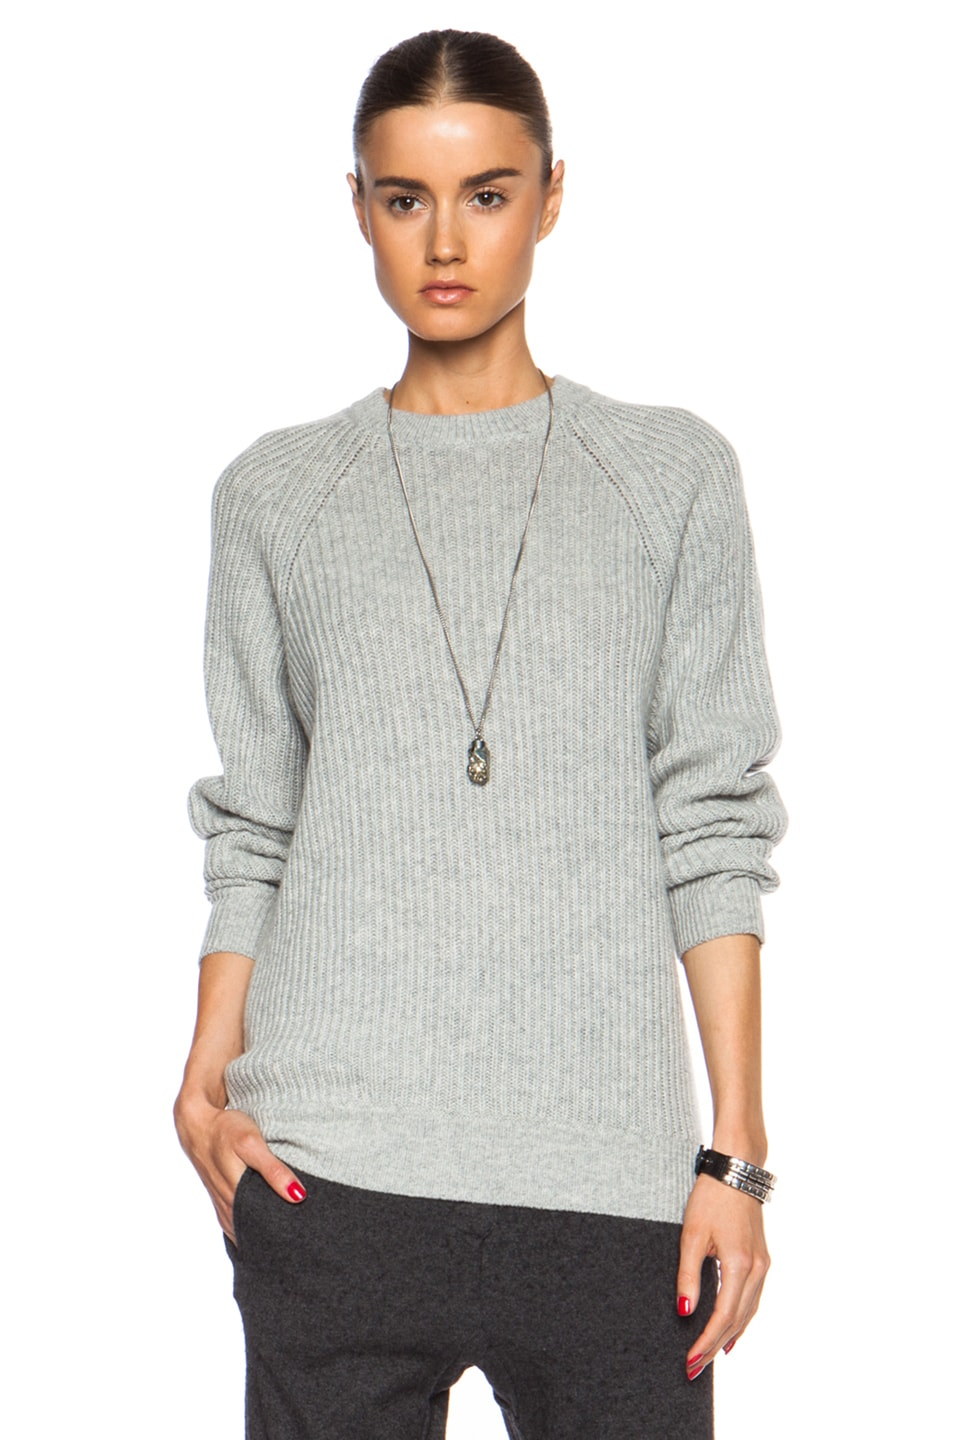 Alexander Wang crew neck jumper - Grey Wholesale Price Cheap Price Real Cheap Online Sale Great Deals bF1tua